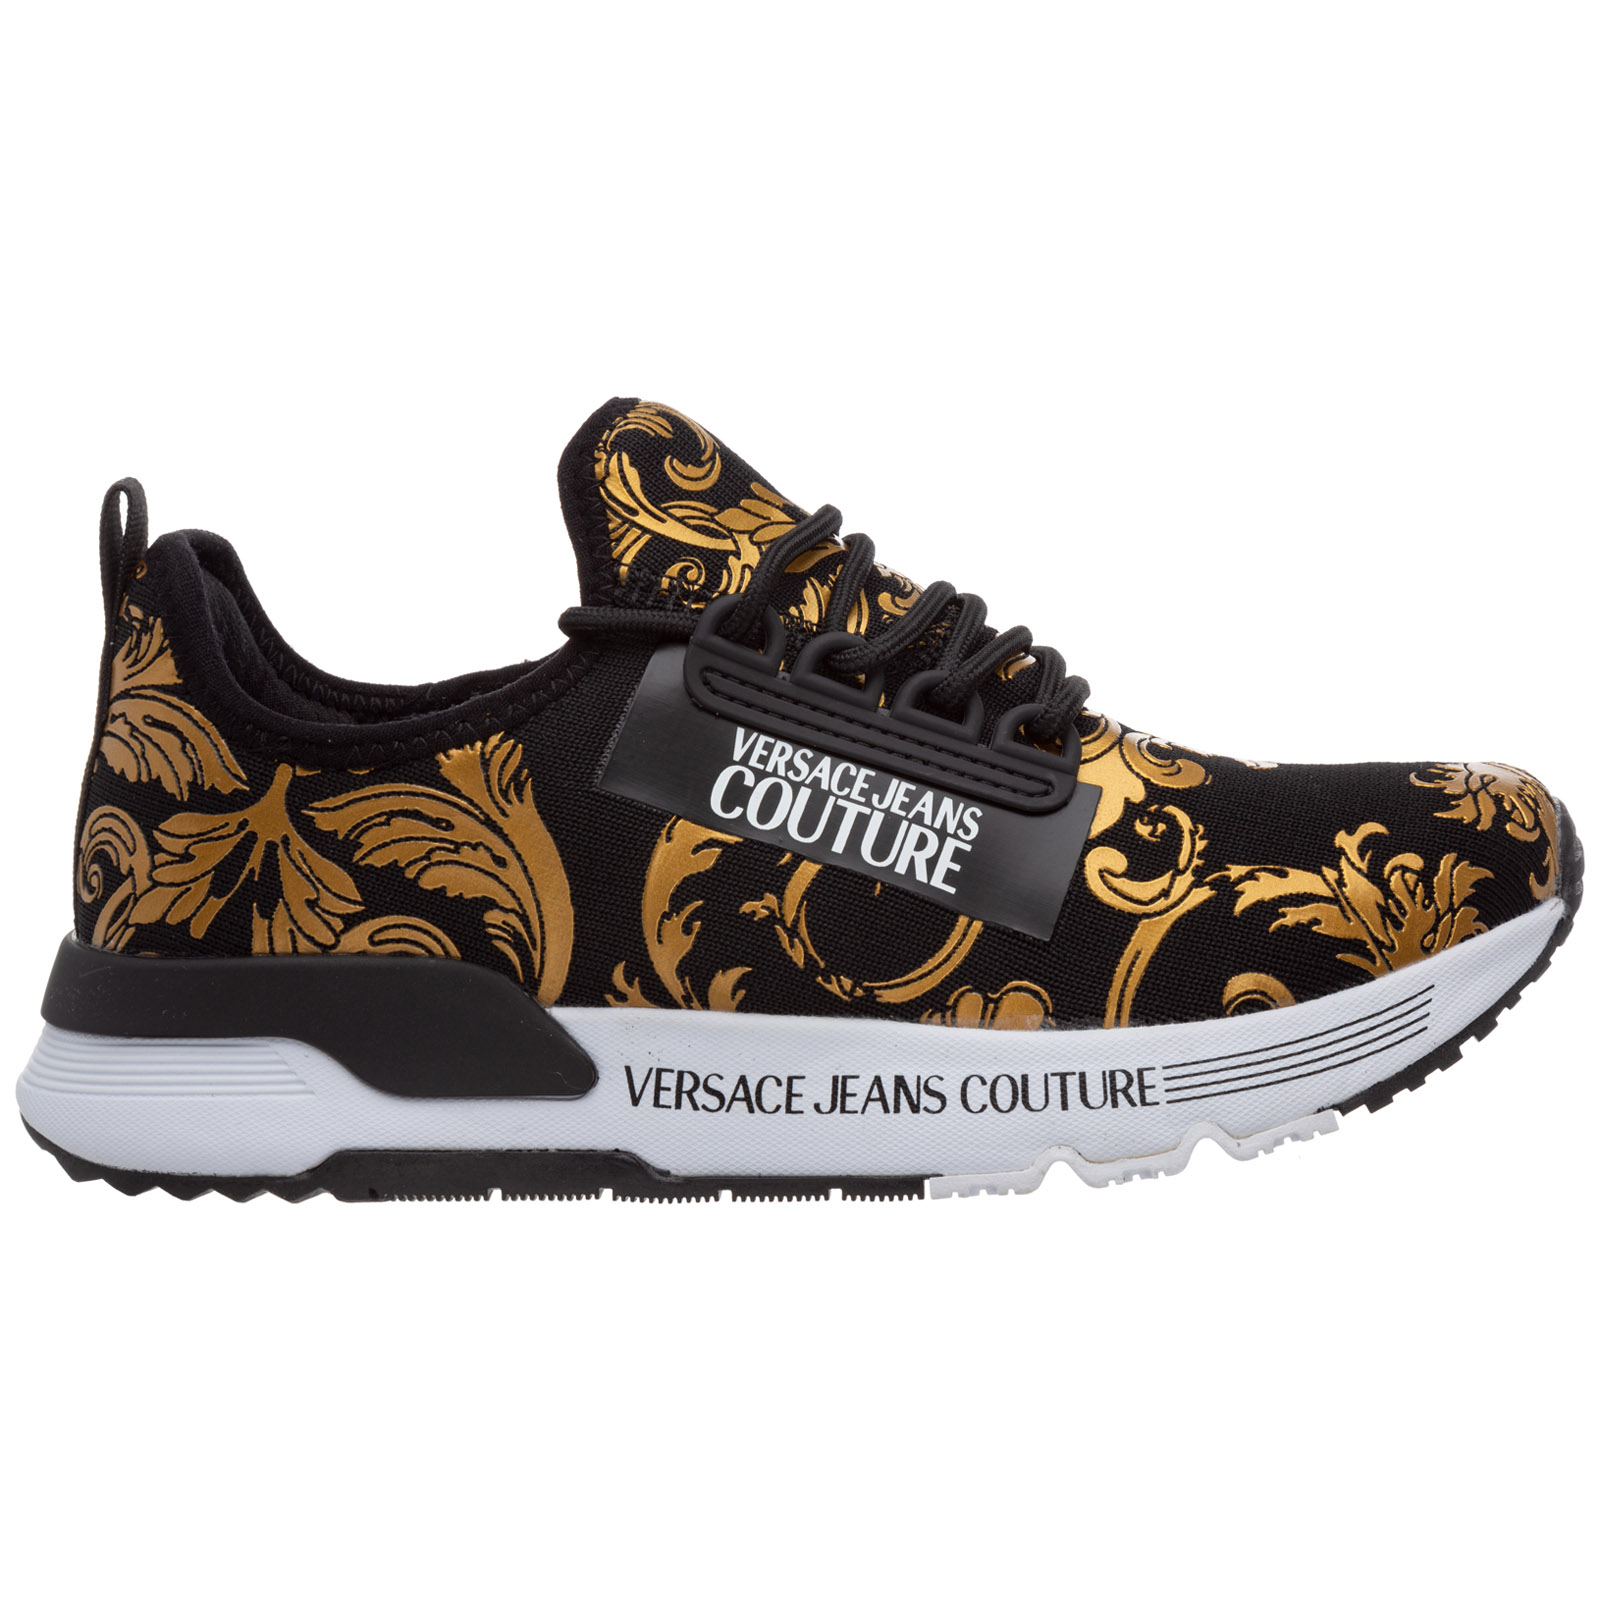 Versace Jeans Couture Sneakers WOMEN'S SHOES TRAINERS SNEAKERS